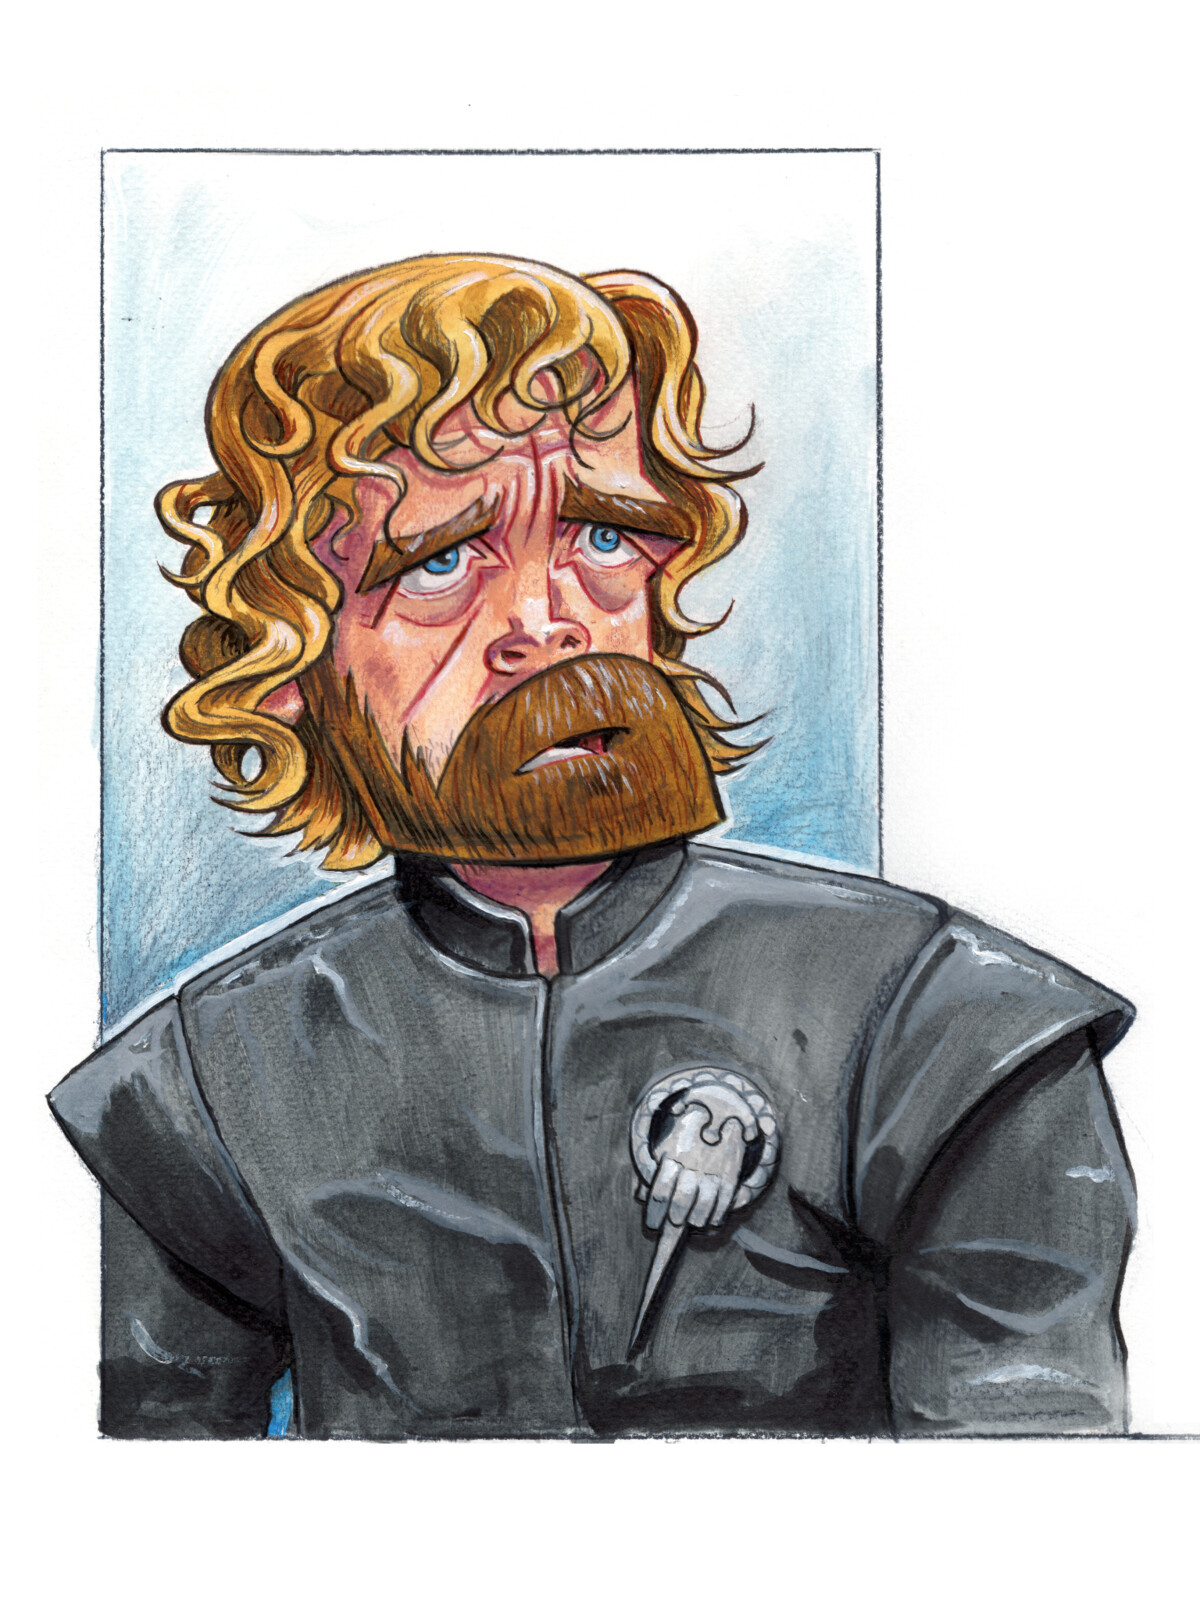 Game Of Thrones - Tyrion Lannister, Season 8